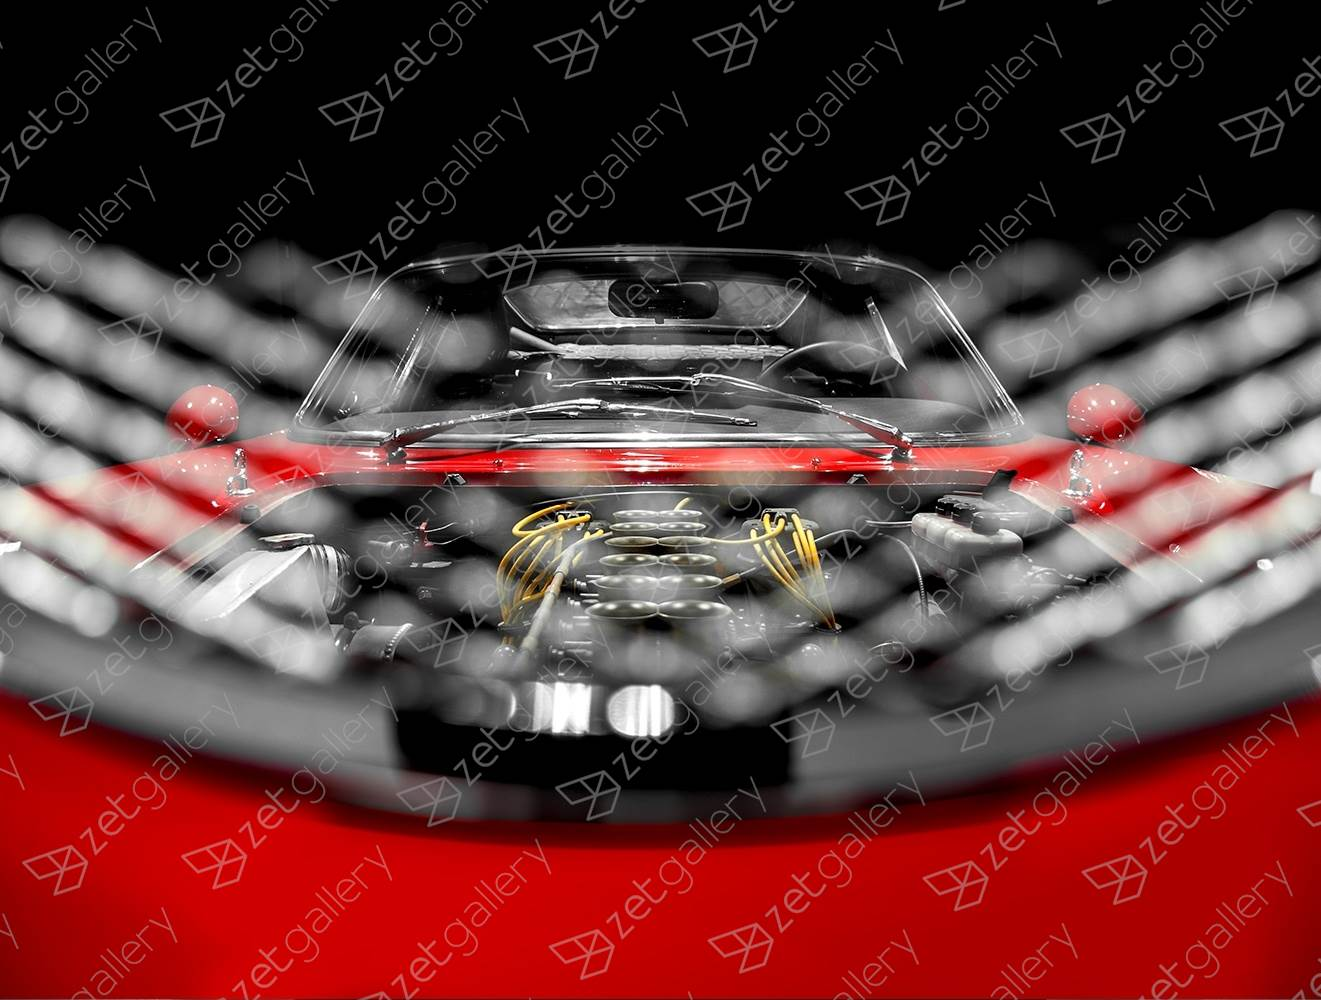 Ferrari GTB Competizione 01, original Avant-Garde Digital Photography by Yggdrasil Art